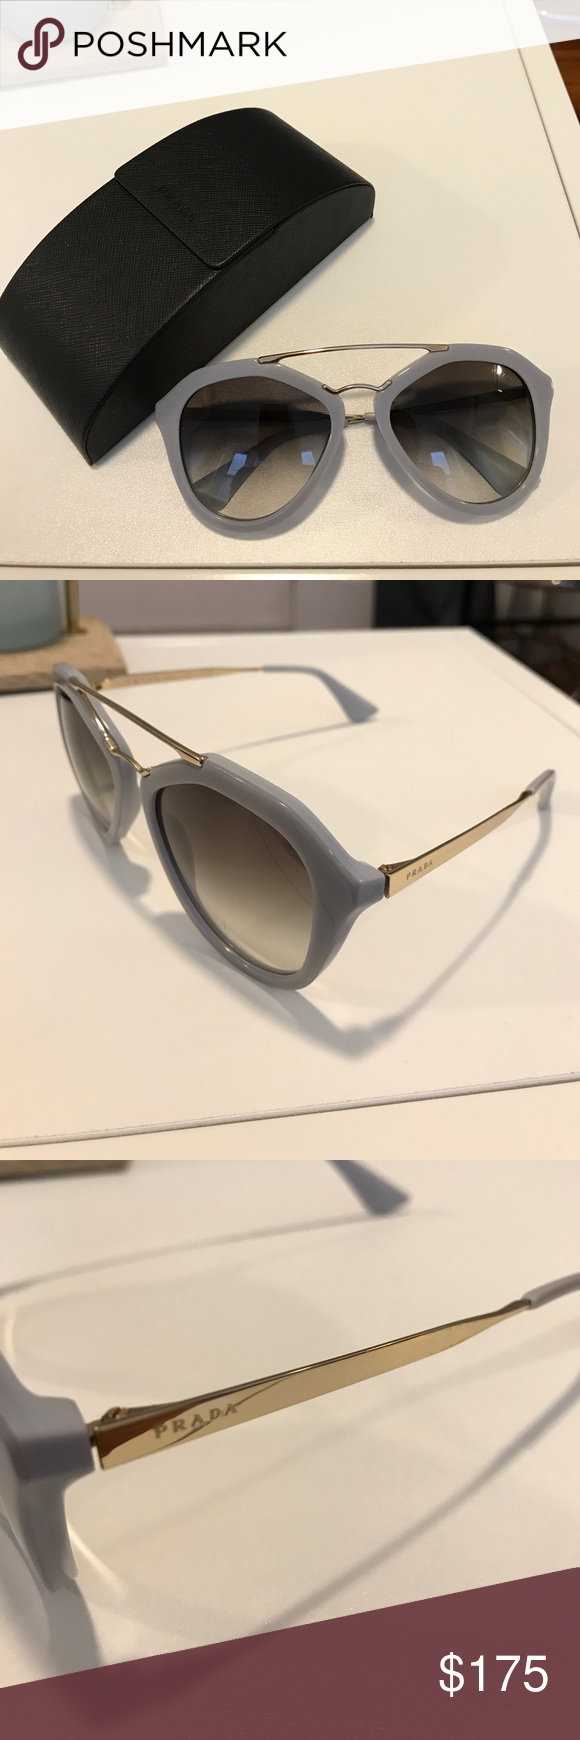 9e44e302236c Not noticeable when wearing. A beautiful light blue grey color. Gold  hardware. Comes with case. AUTHENTIC!! Purchased from Saks Prada  Accessories Sunglasses